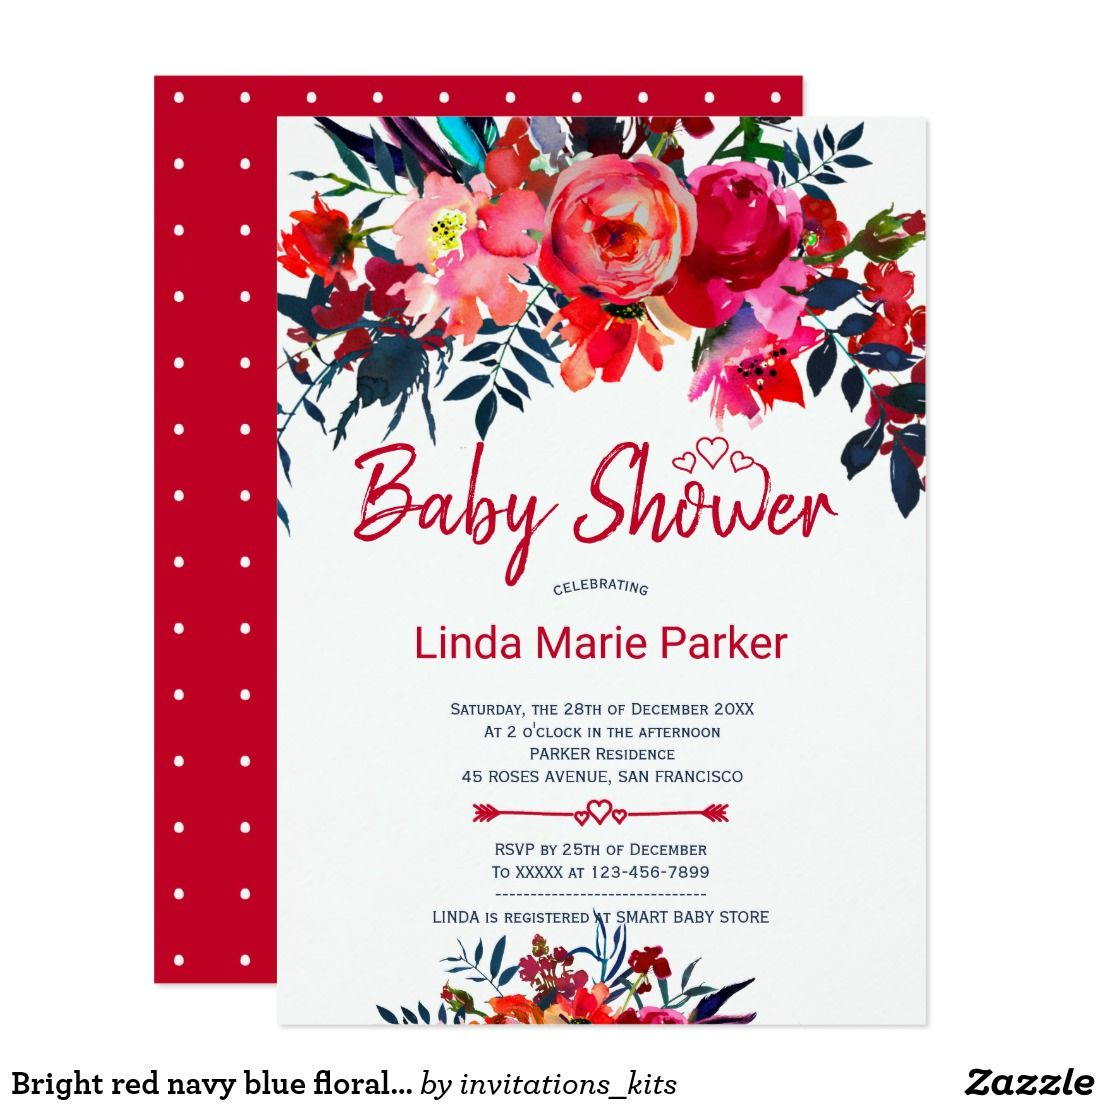 Bright red navy blue floral chic baby shower invitation | { Oh Baby ...